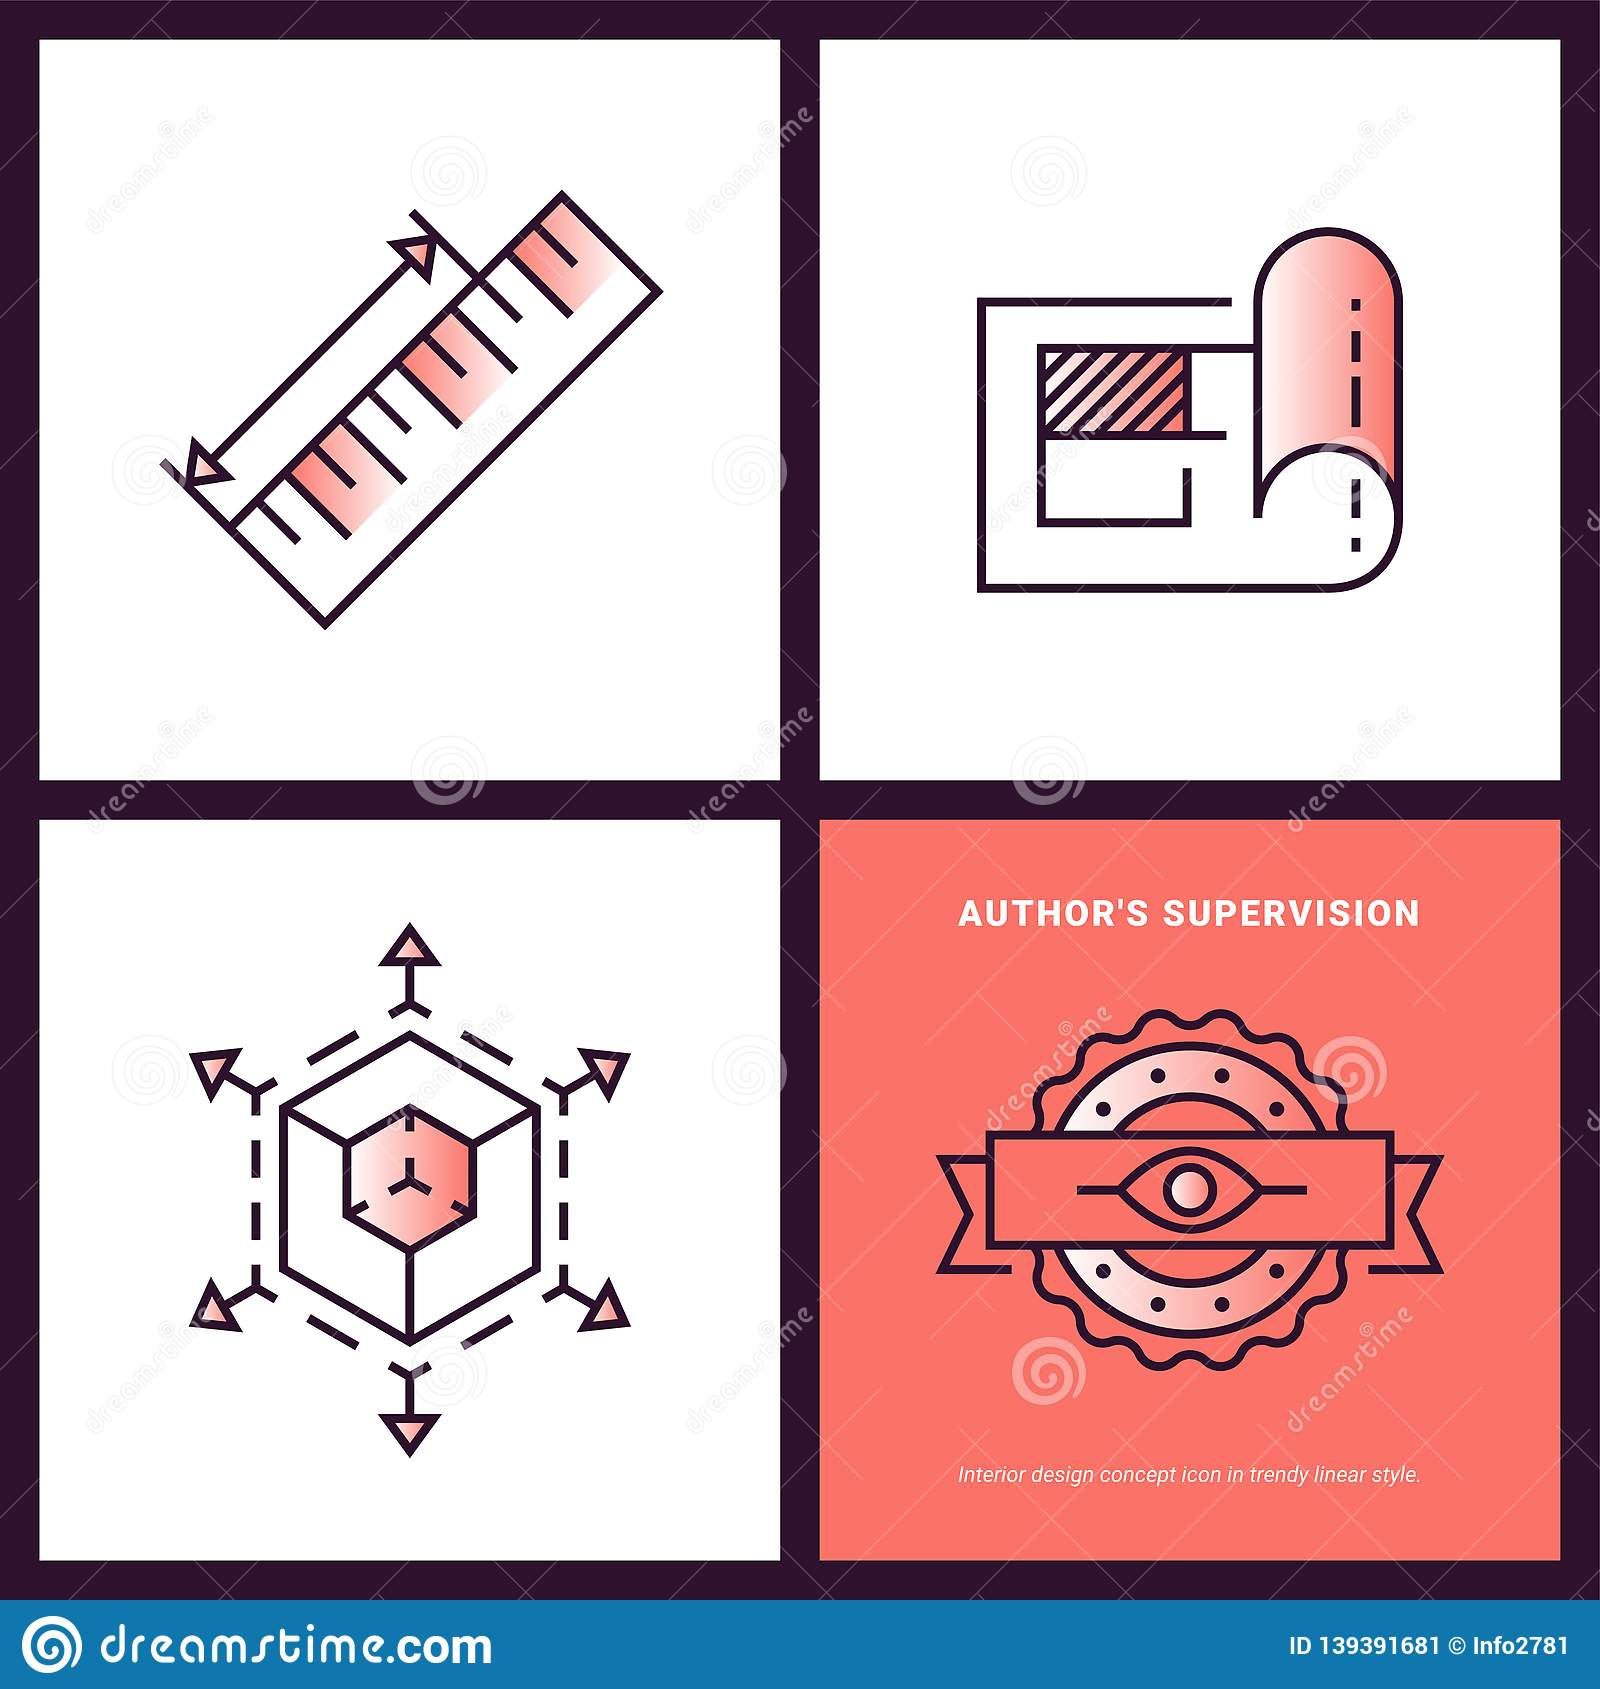 Infographic Banner Of Interior Design Process. Concept